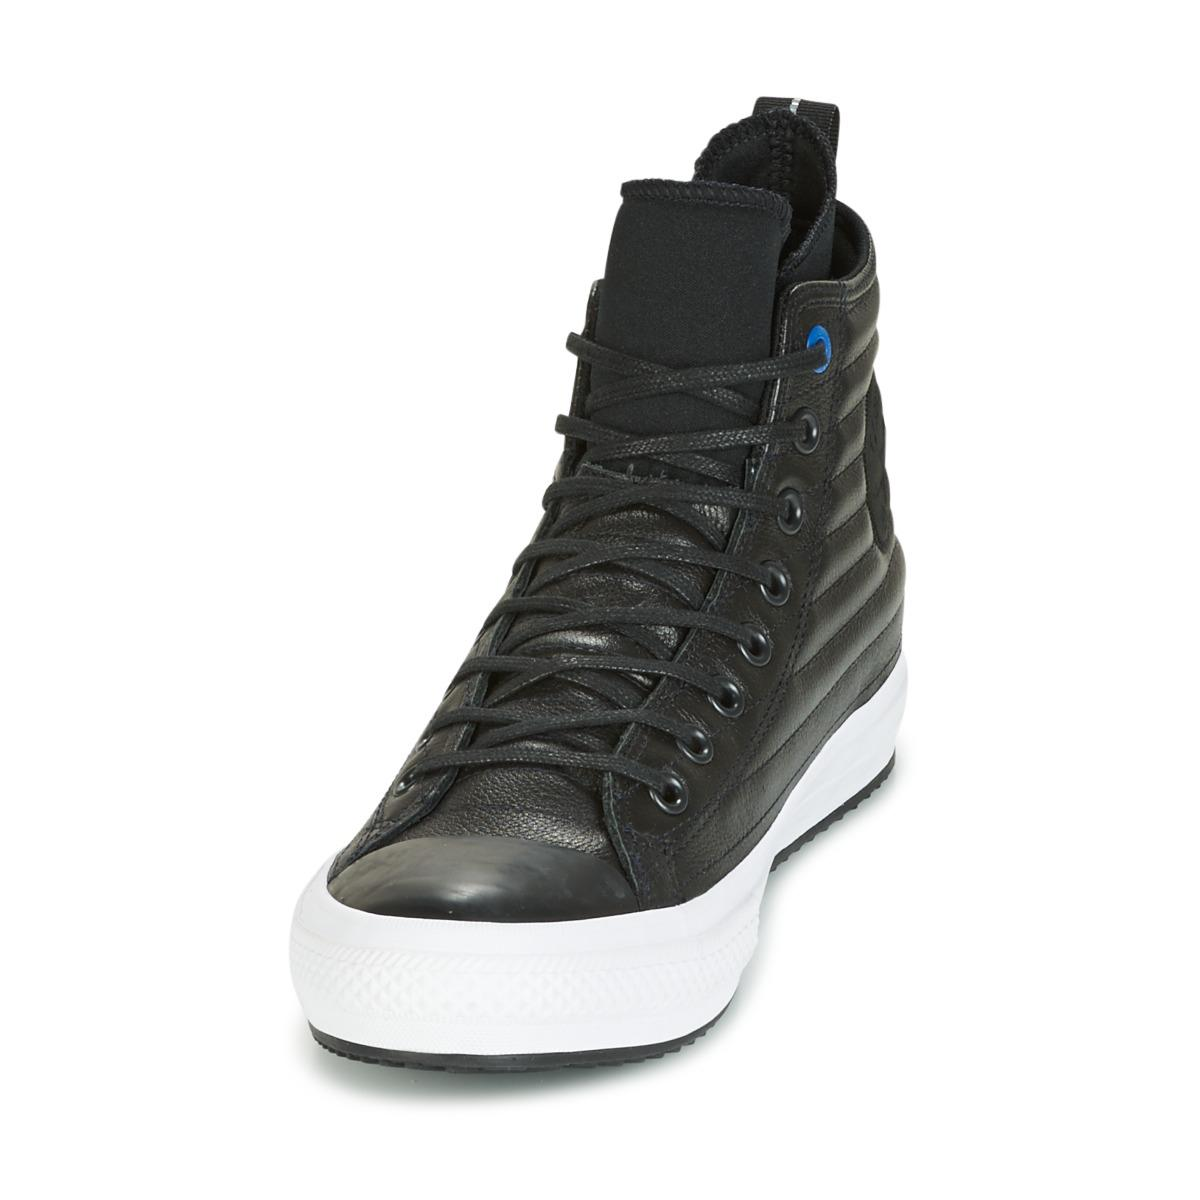 3955af4edf0f Converse - Chuck Taylor Wp Boot Quilted Leather Hi Black blue Jay white  Men s. View fullscreen